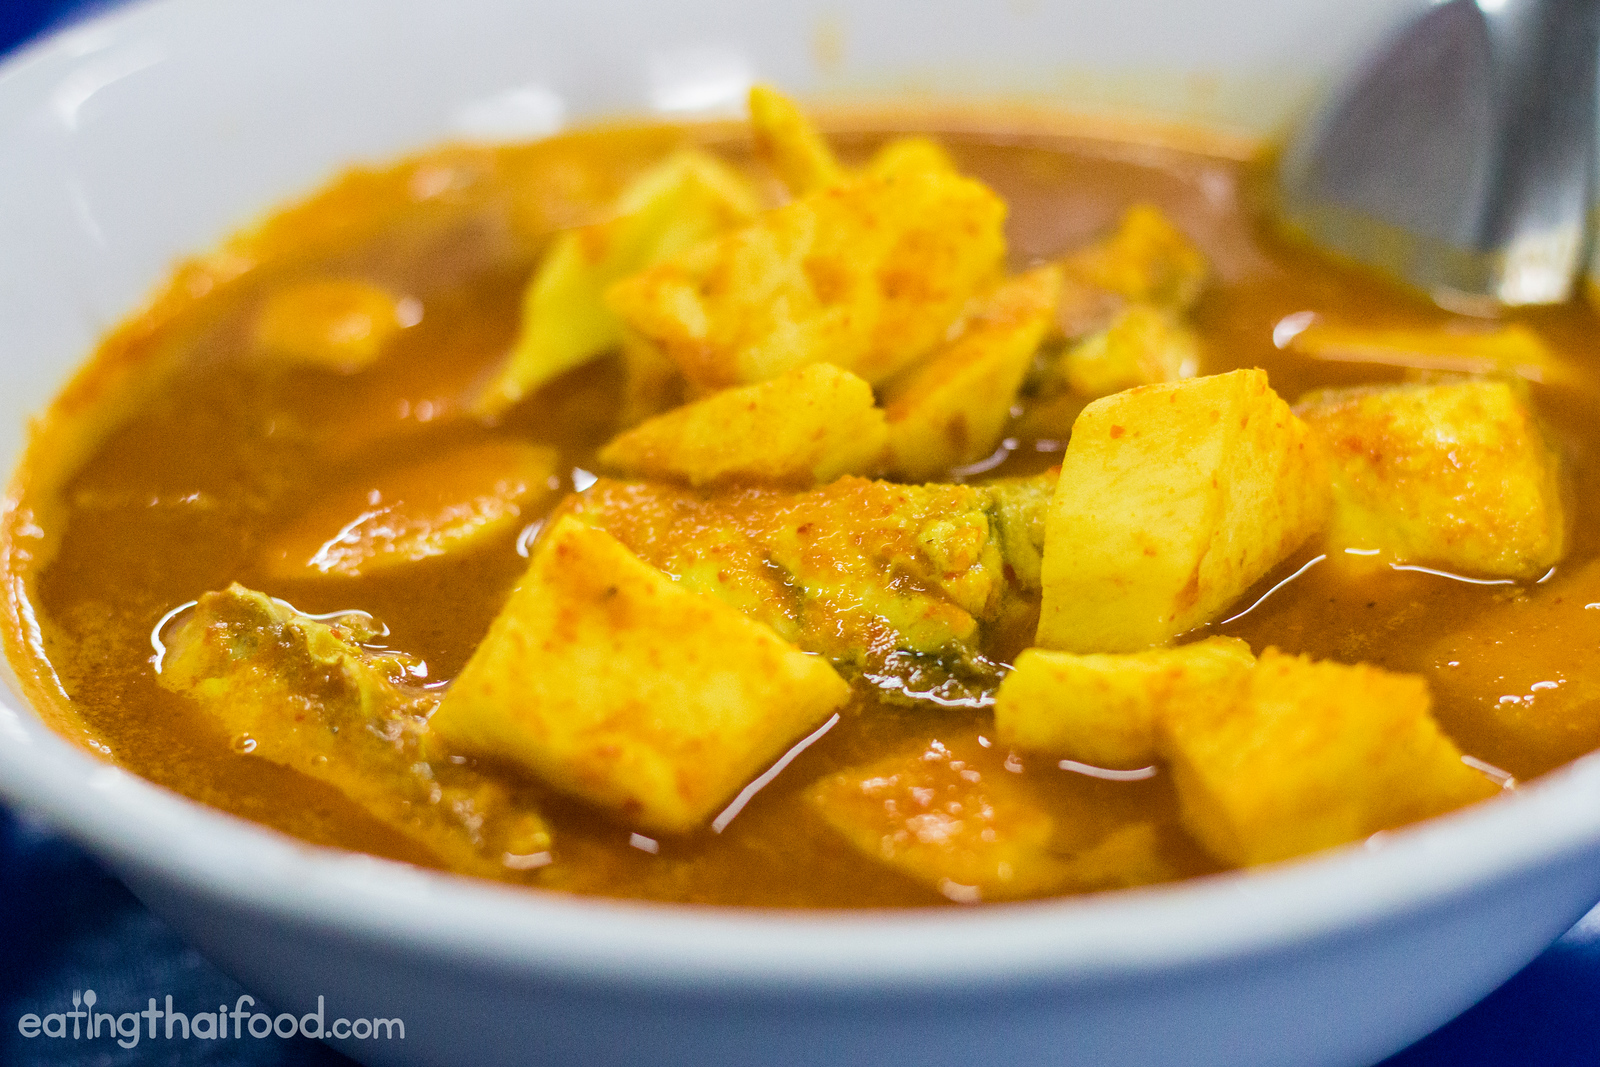 An incredibly flavorful bowl of southern Thai sour curry (แกงส้มยอดมะพร้าว)